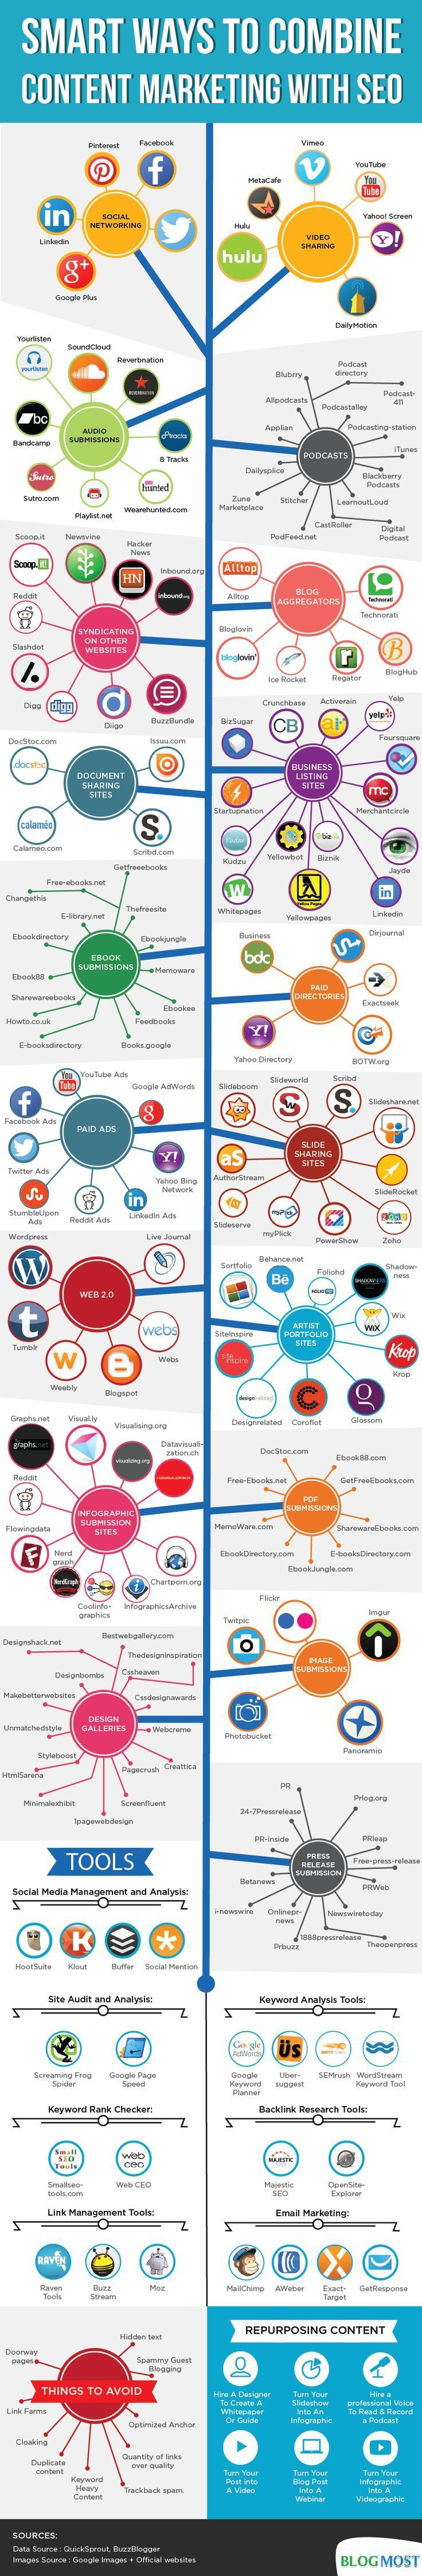 Smart Ways To Combine Content Marketing With SEO infographic: